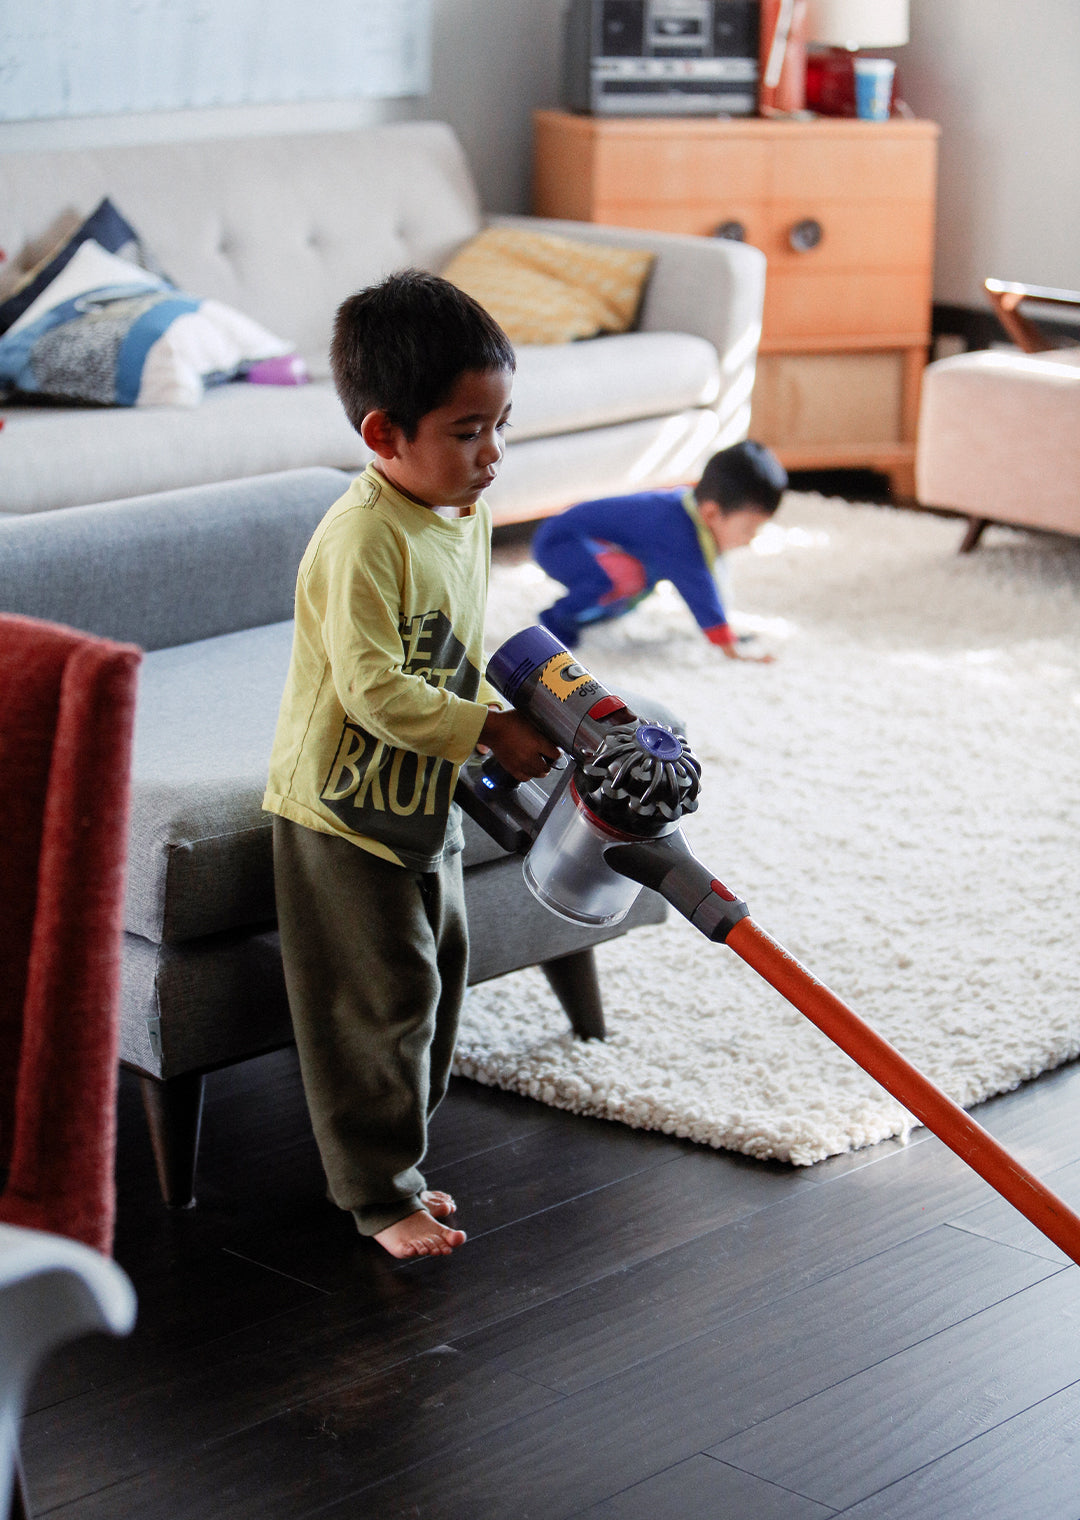 Young diverse little boy vacuuming the living room of his house doing chores